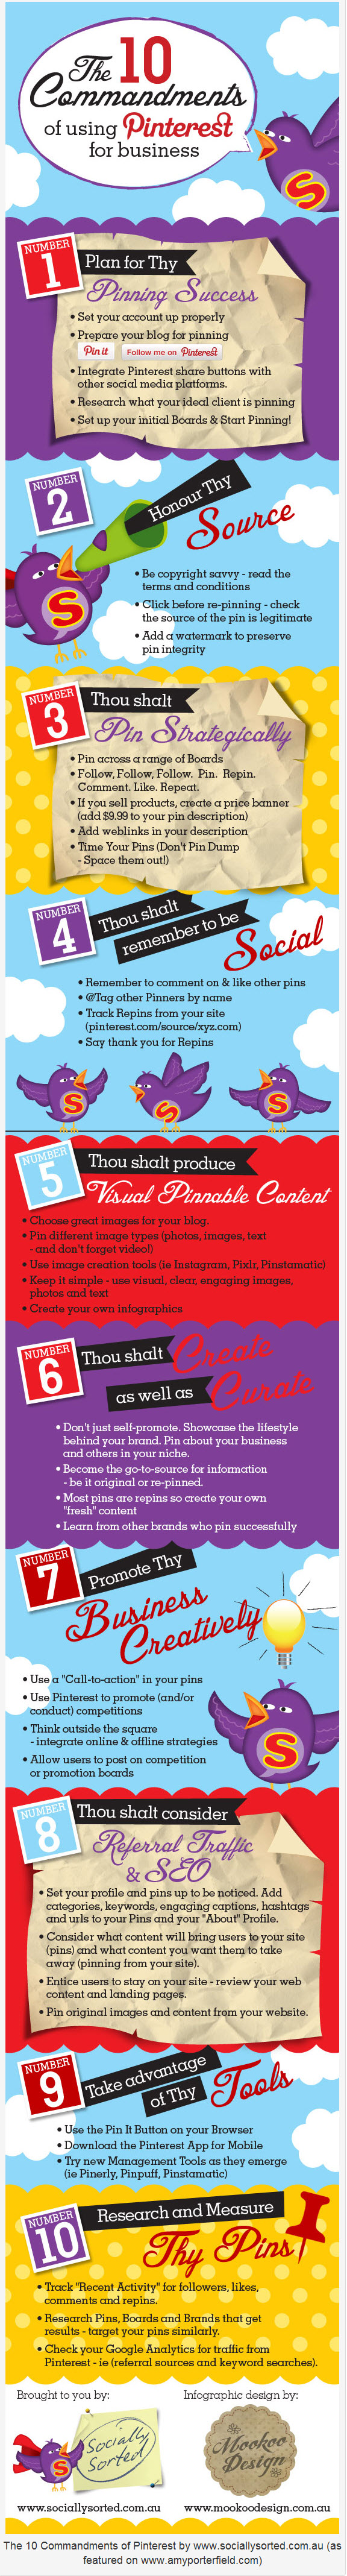 10-top-tips-for-marketing-your-business-on-pinterest-infographic